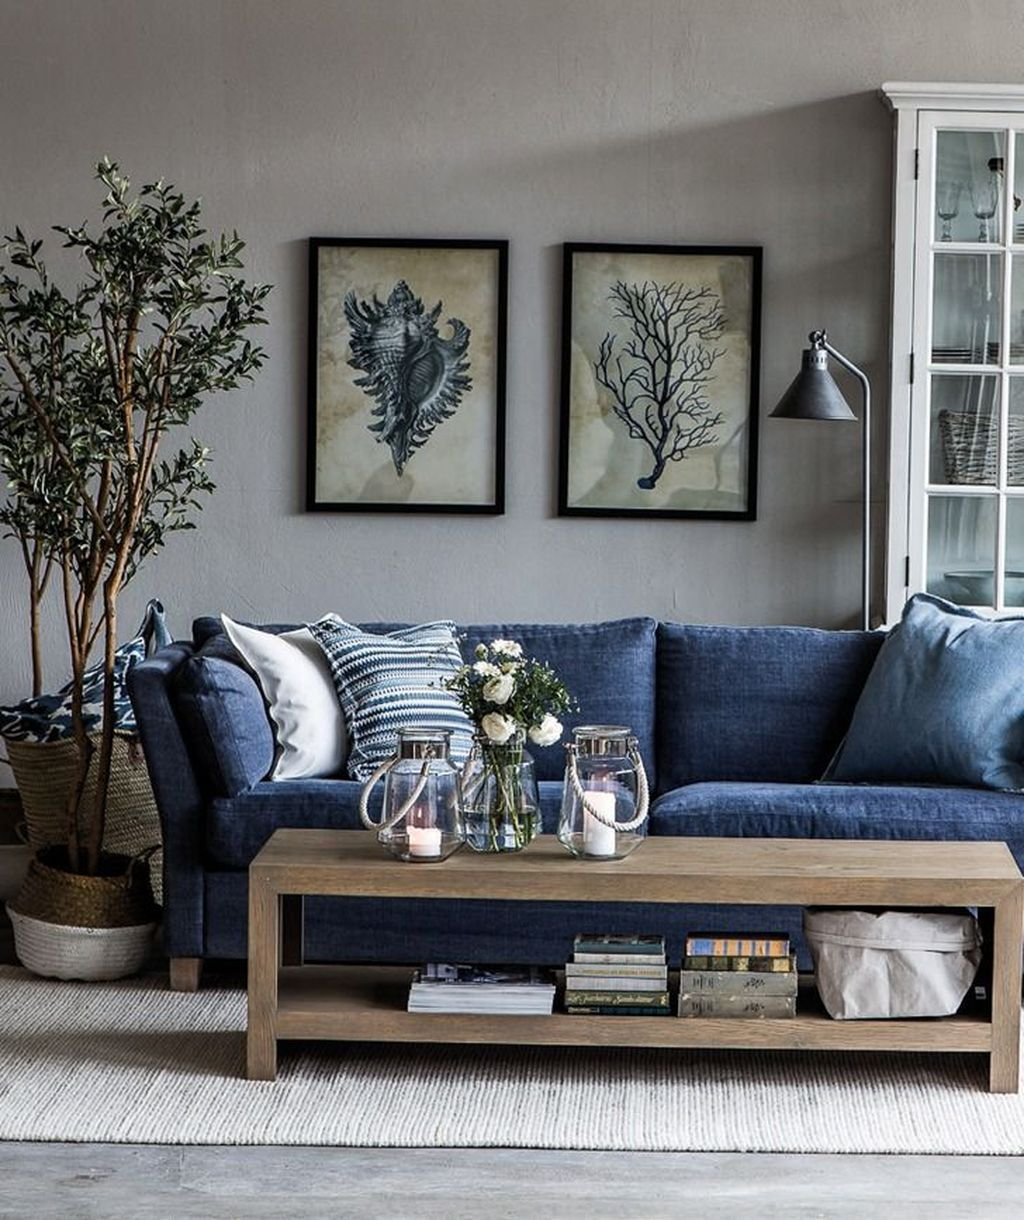 Pin By Melissa On Home Blue Furniture Living Room Blue Sofas Living Room Blue Sofa Living